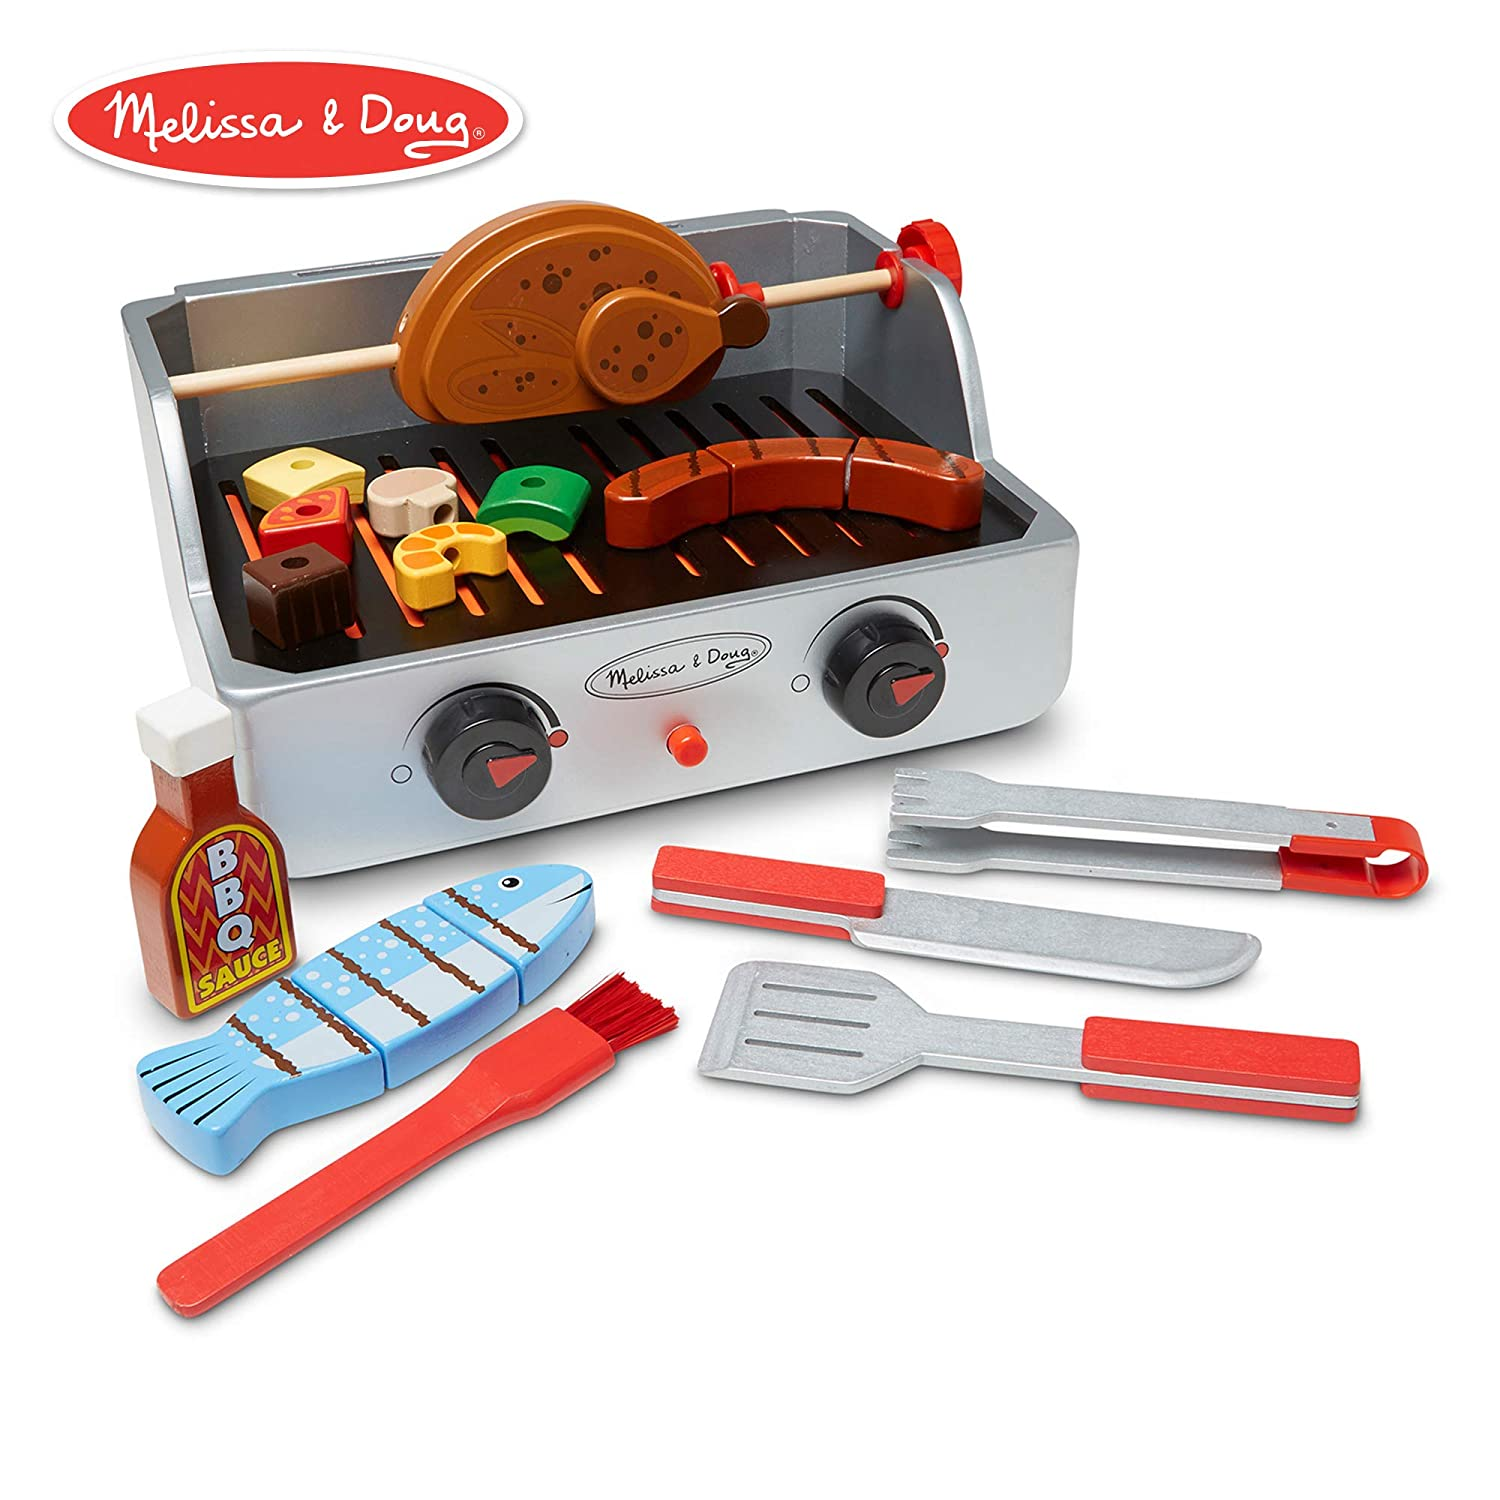 Melissa & Doug Wooden redisserie & Grill Barbecue Play Set (24 Pieces, Pretend Play Food Toy)